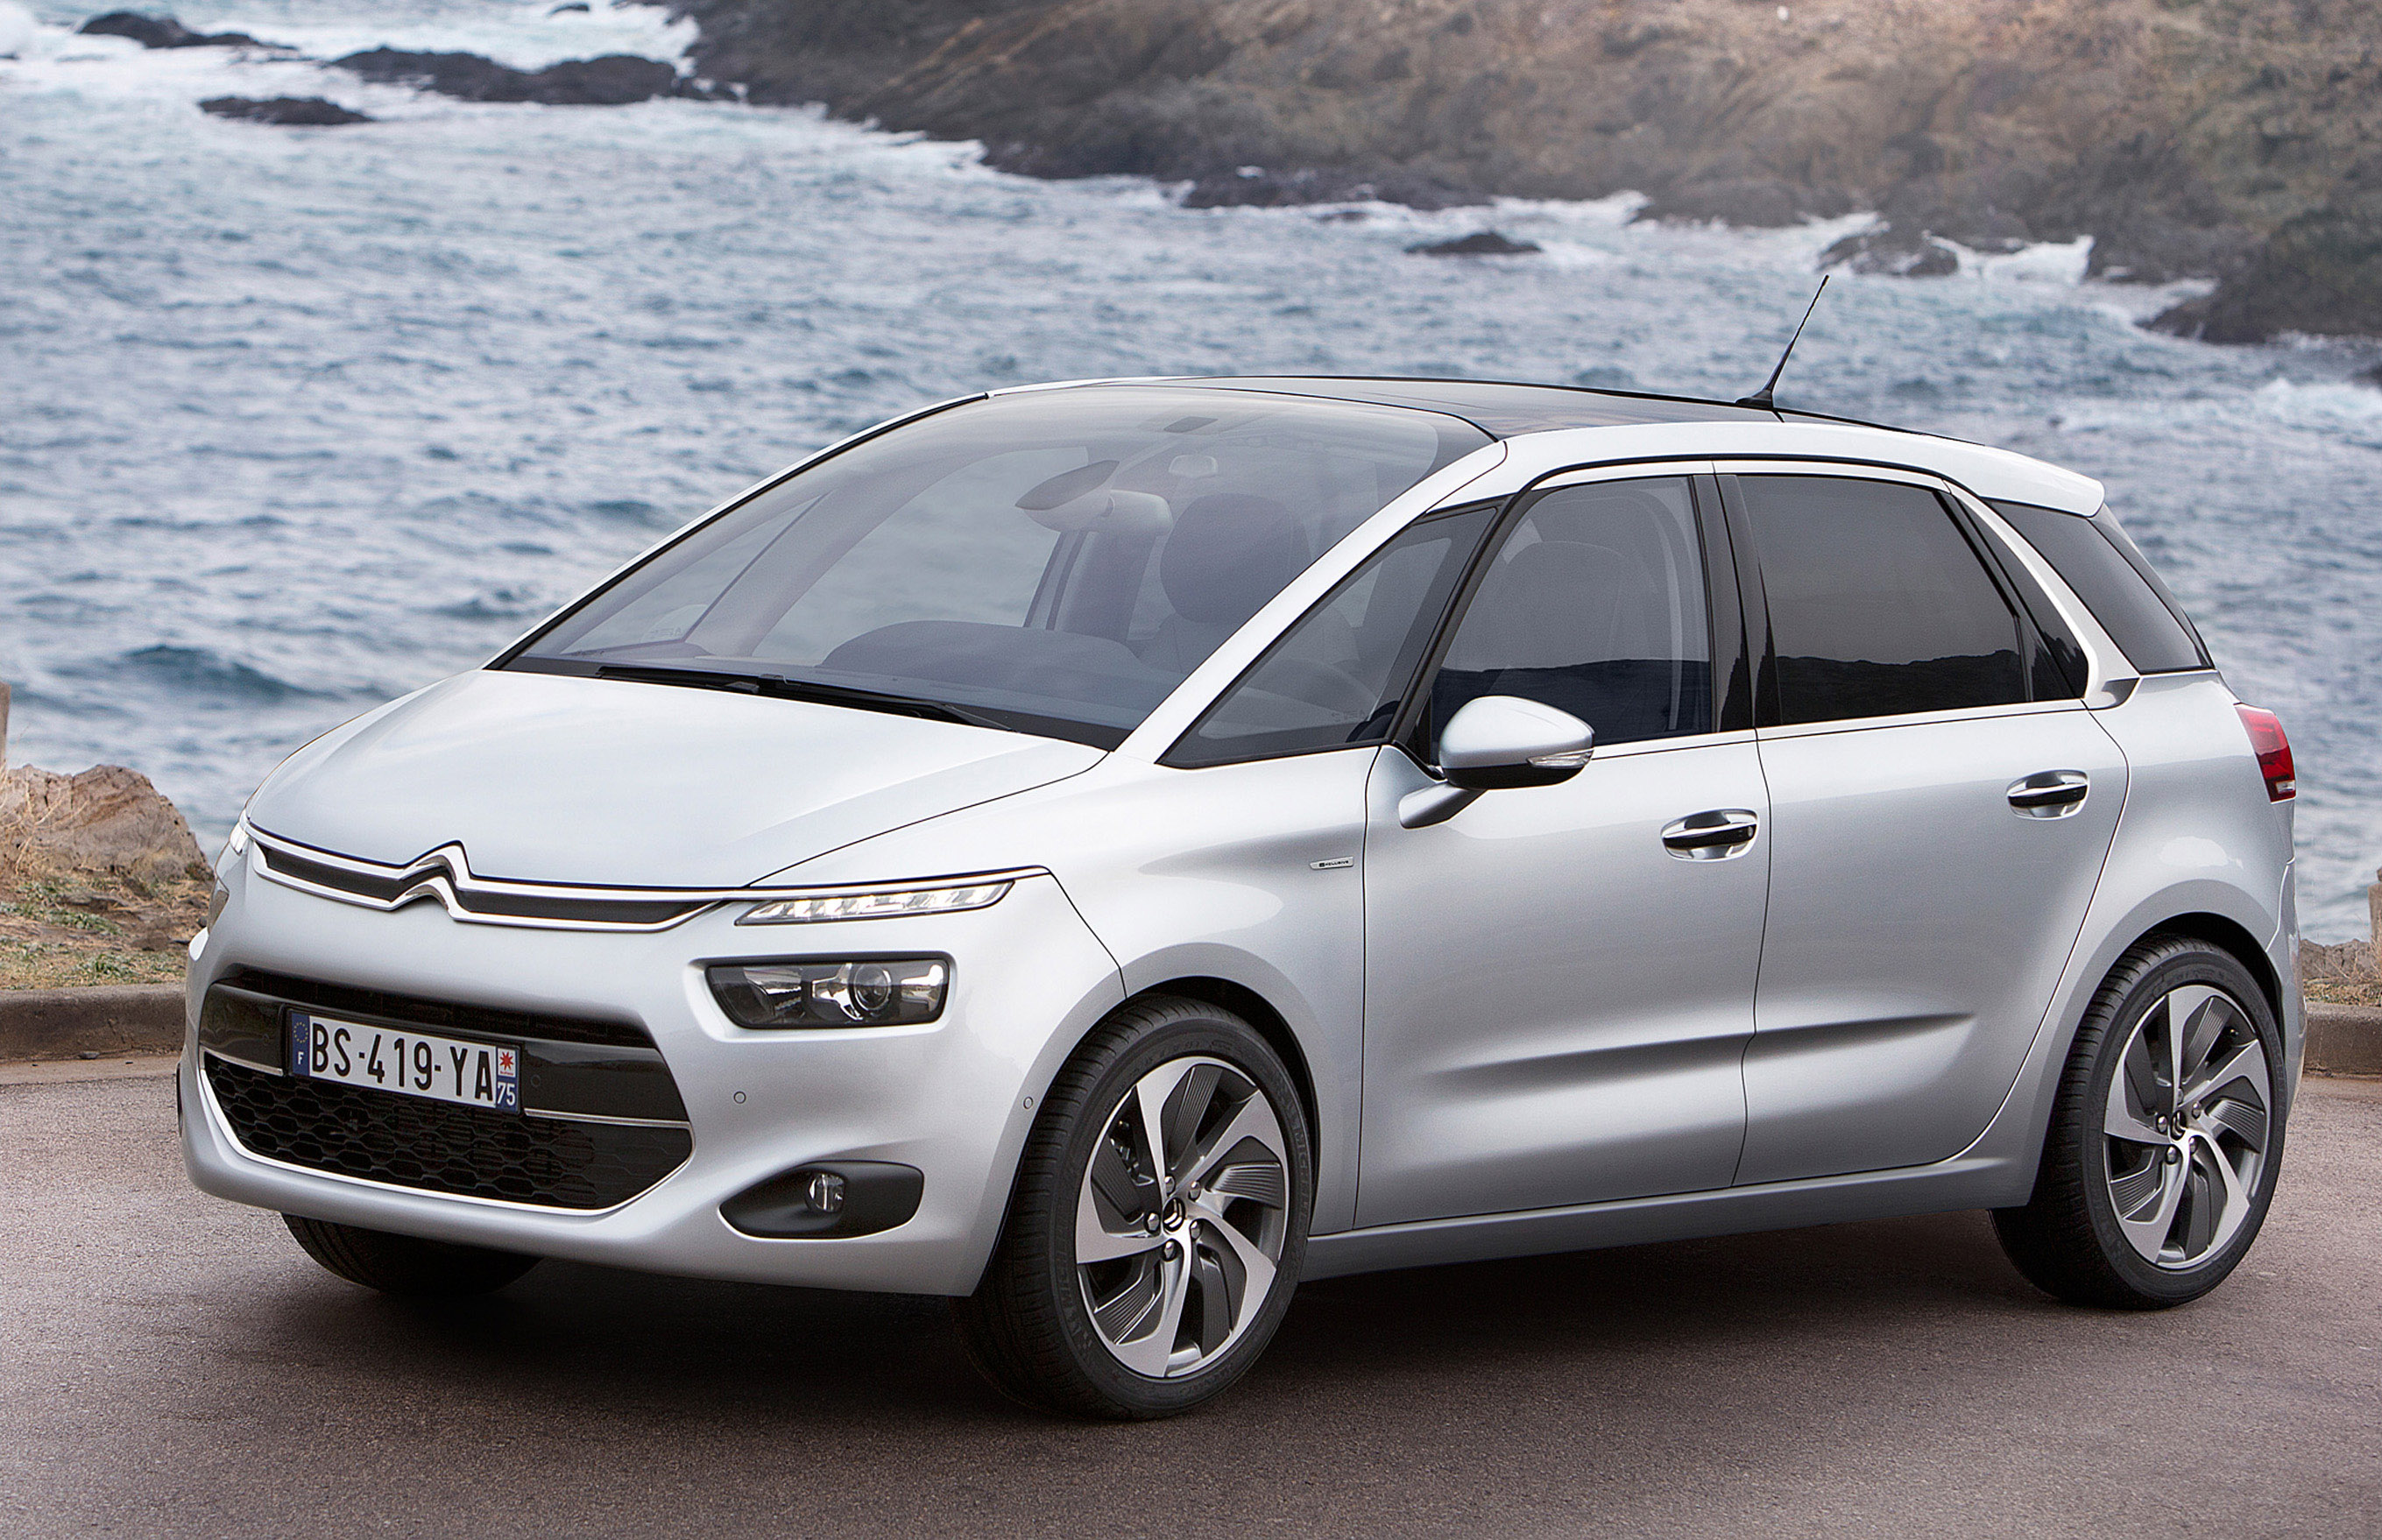 2014 Citroen C4 Picasso Technospace Revealed